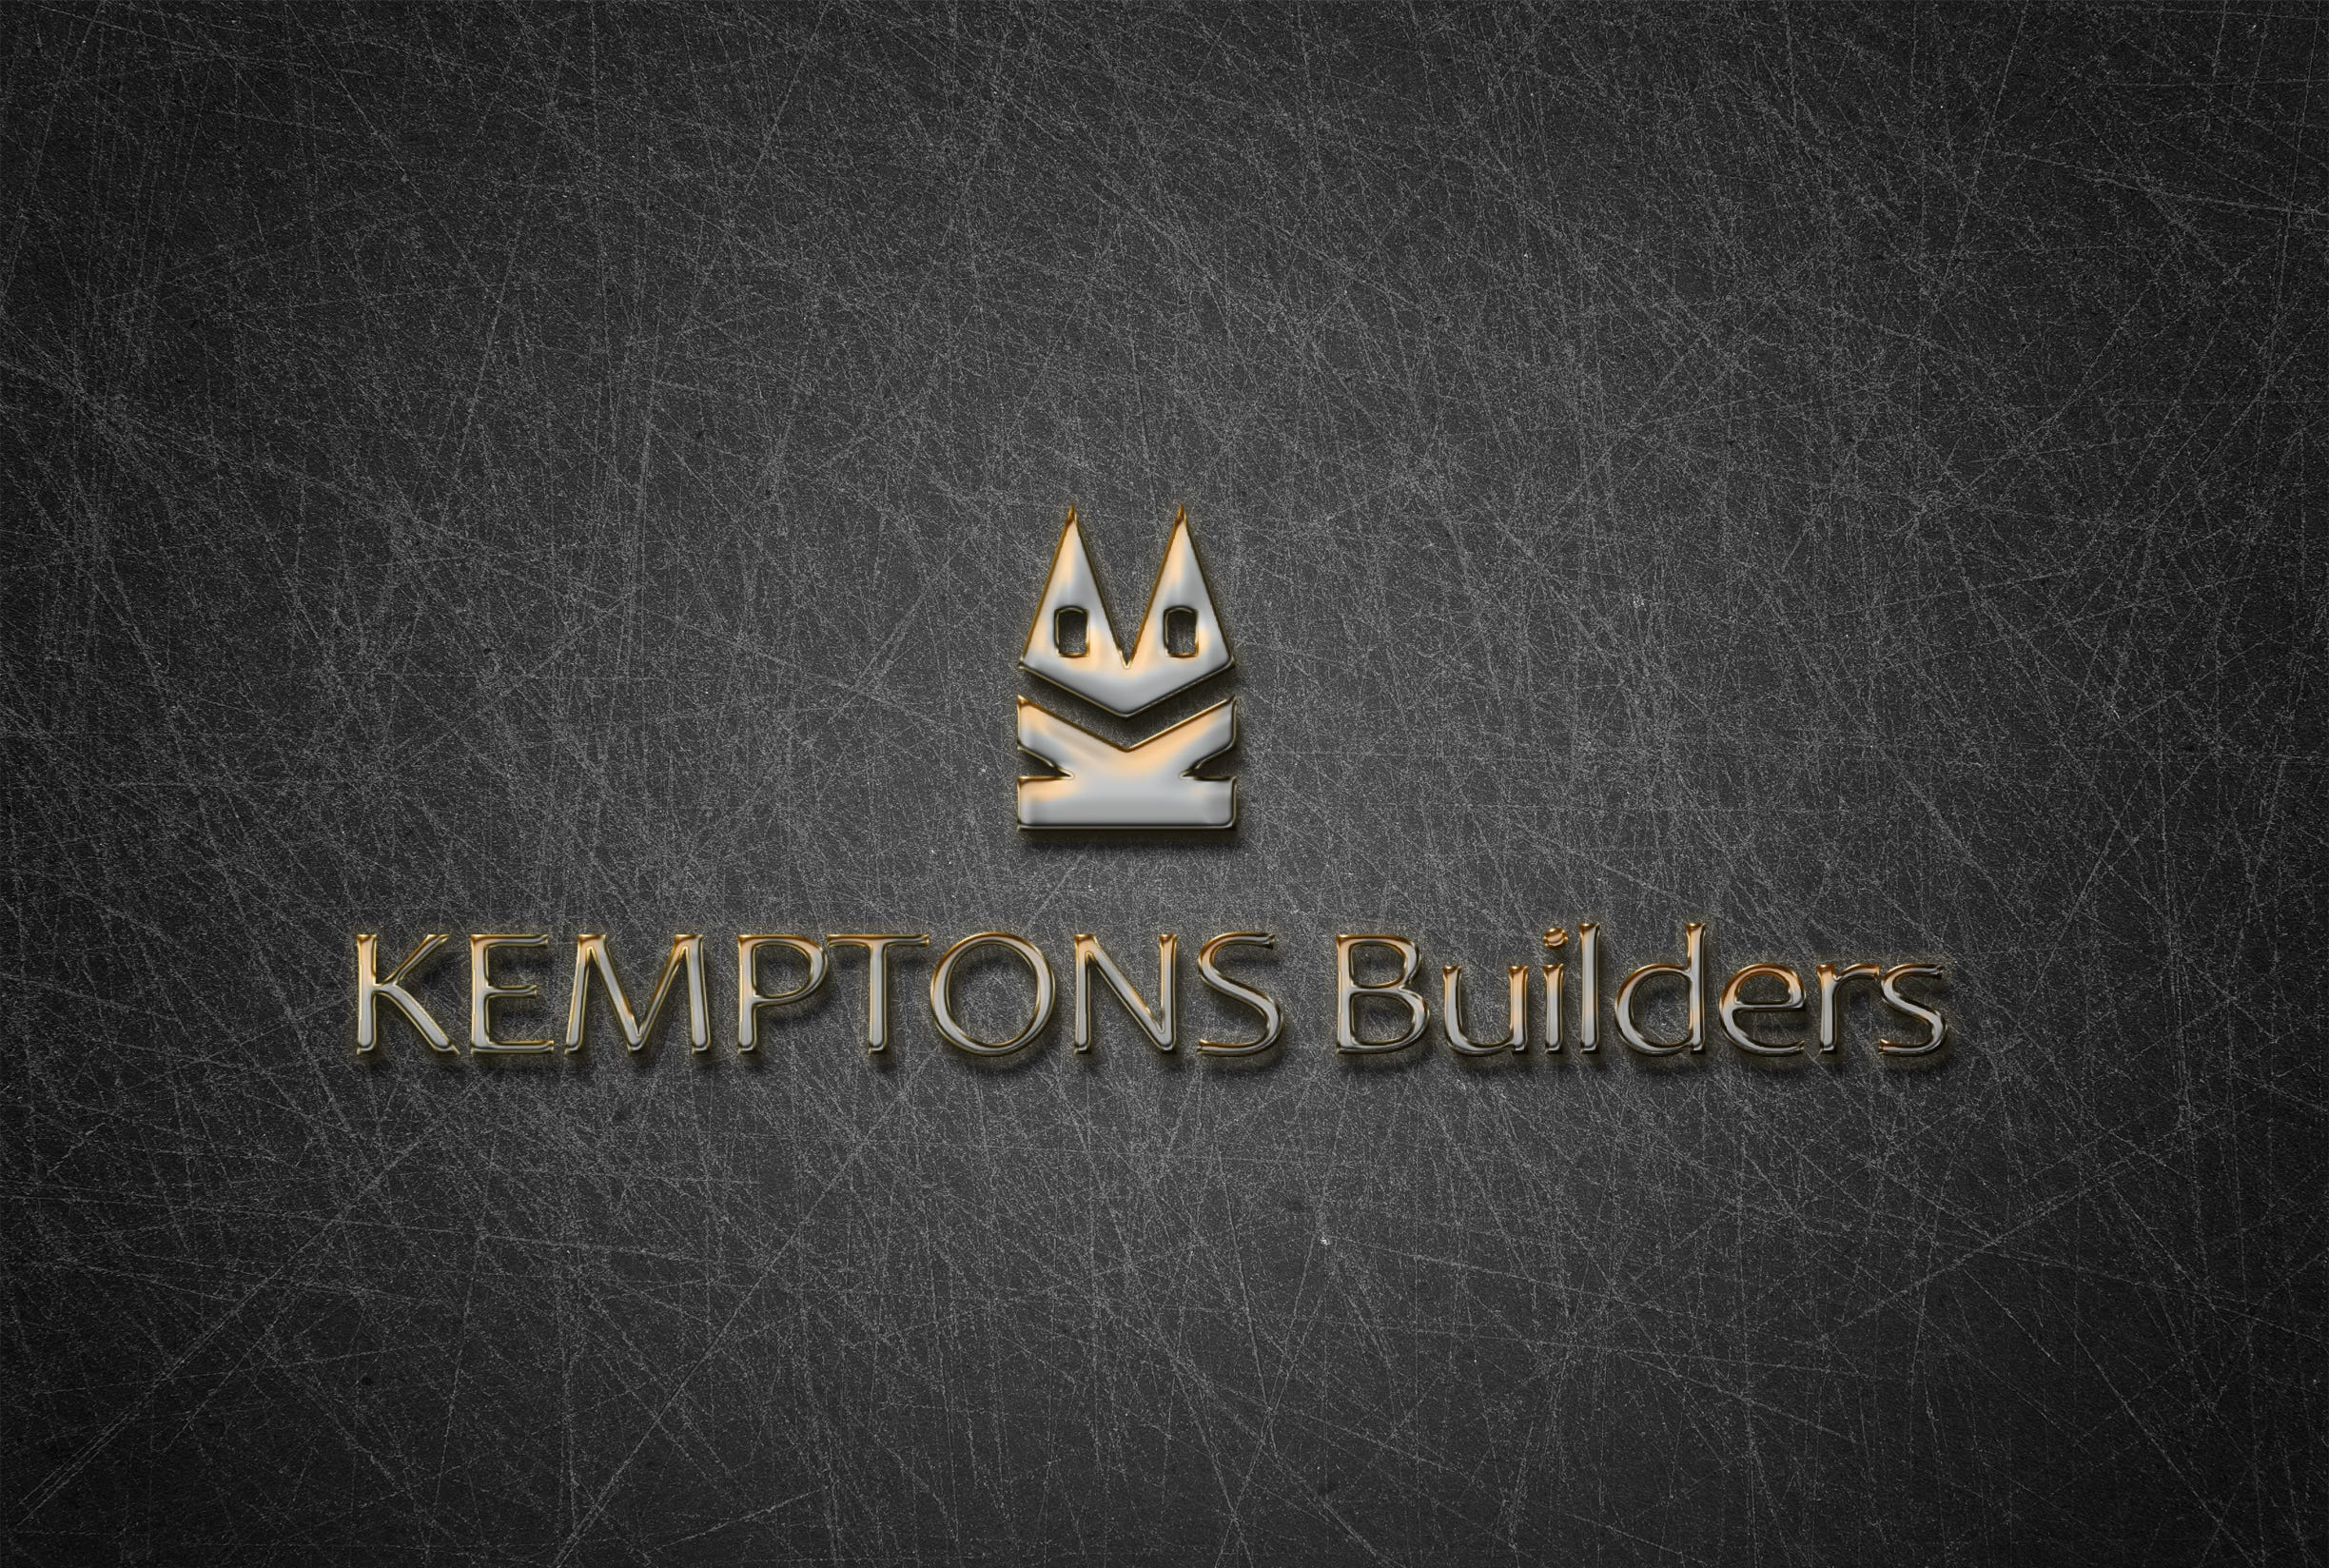 A logo for Kempons Builders